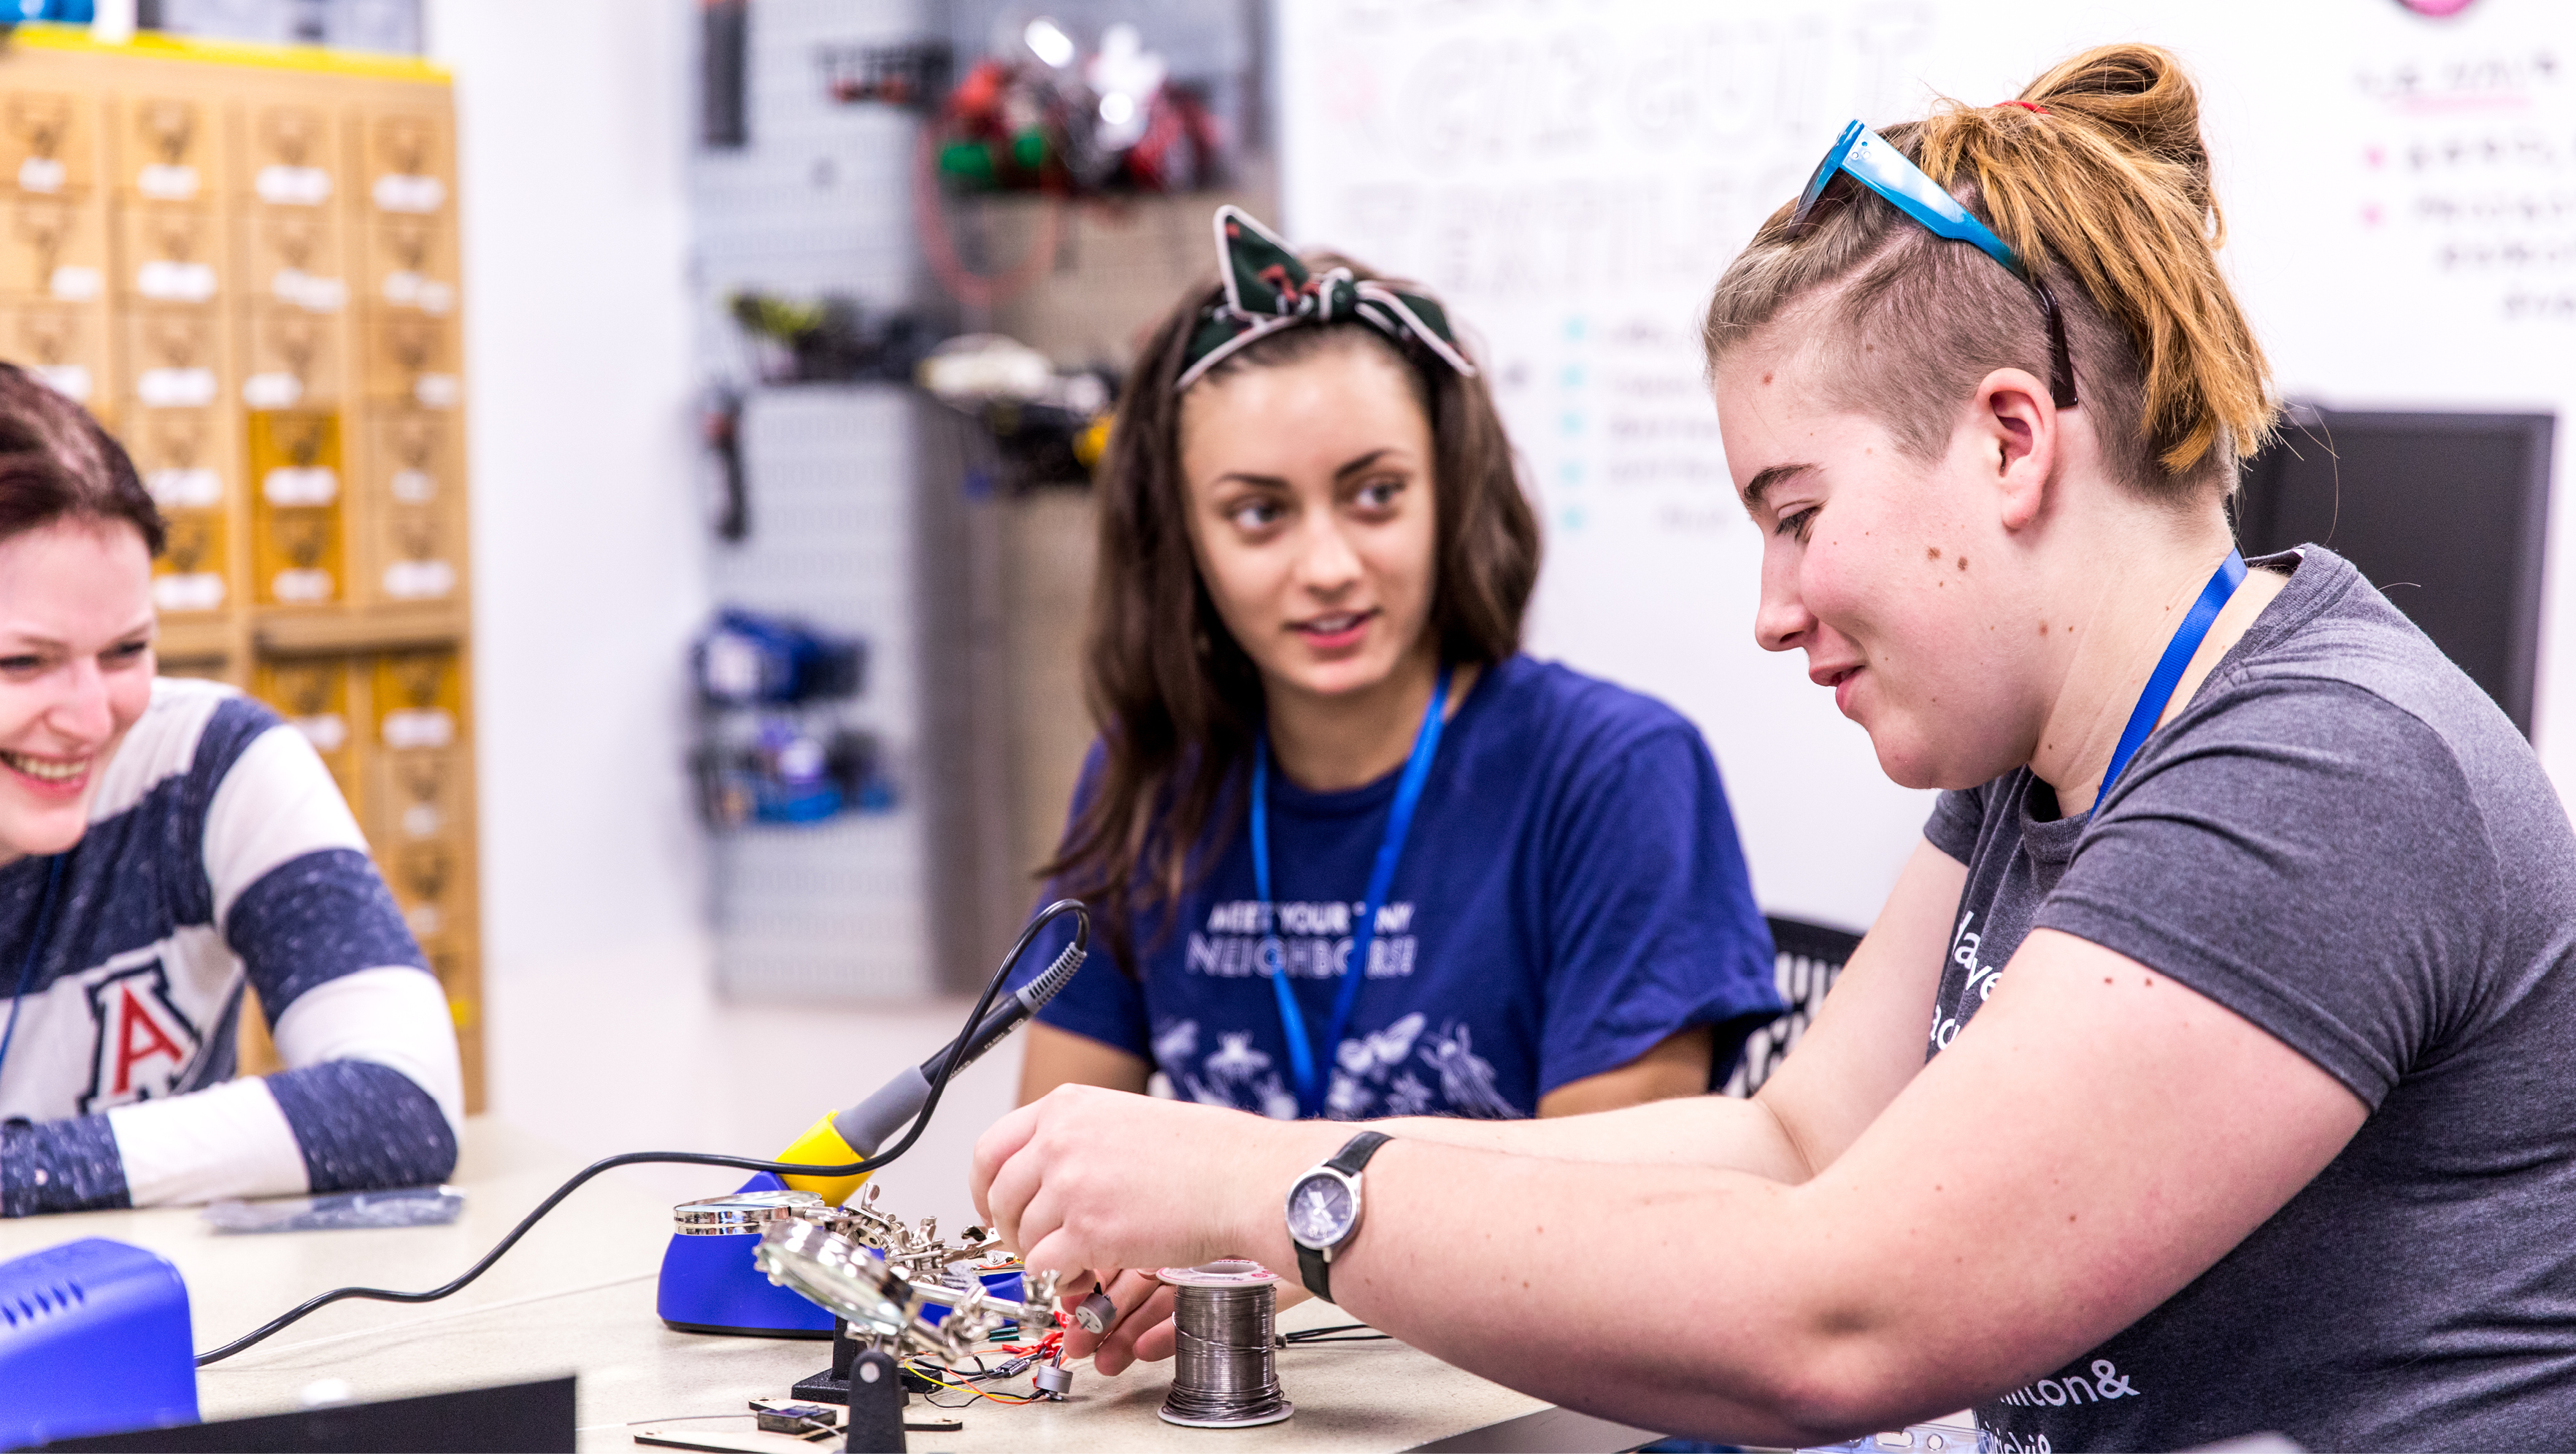 Two students soldering wires